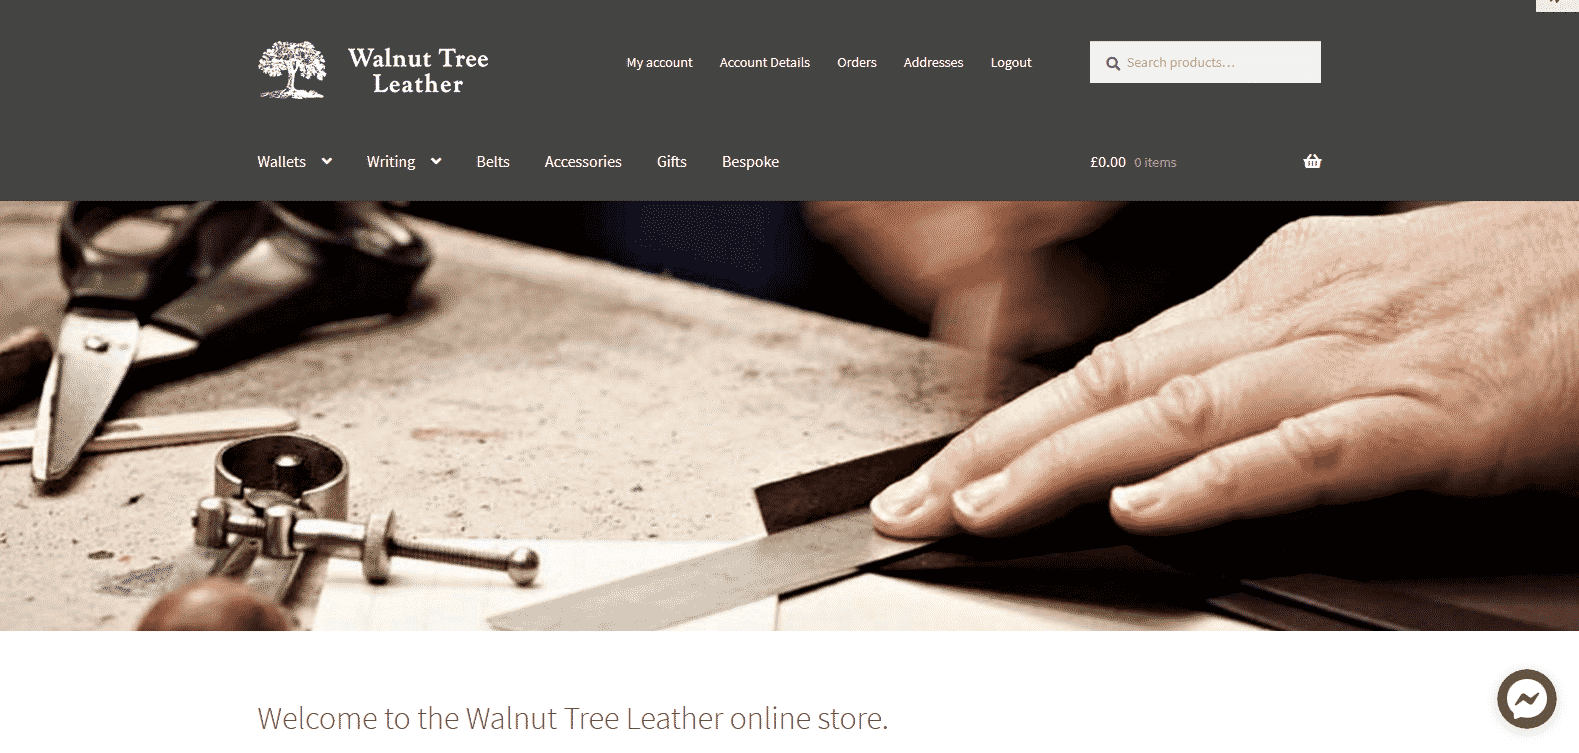 New Walnut Tree Leather Website Screenshot